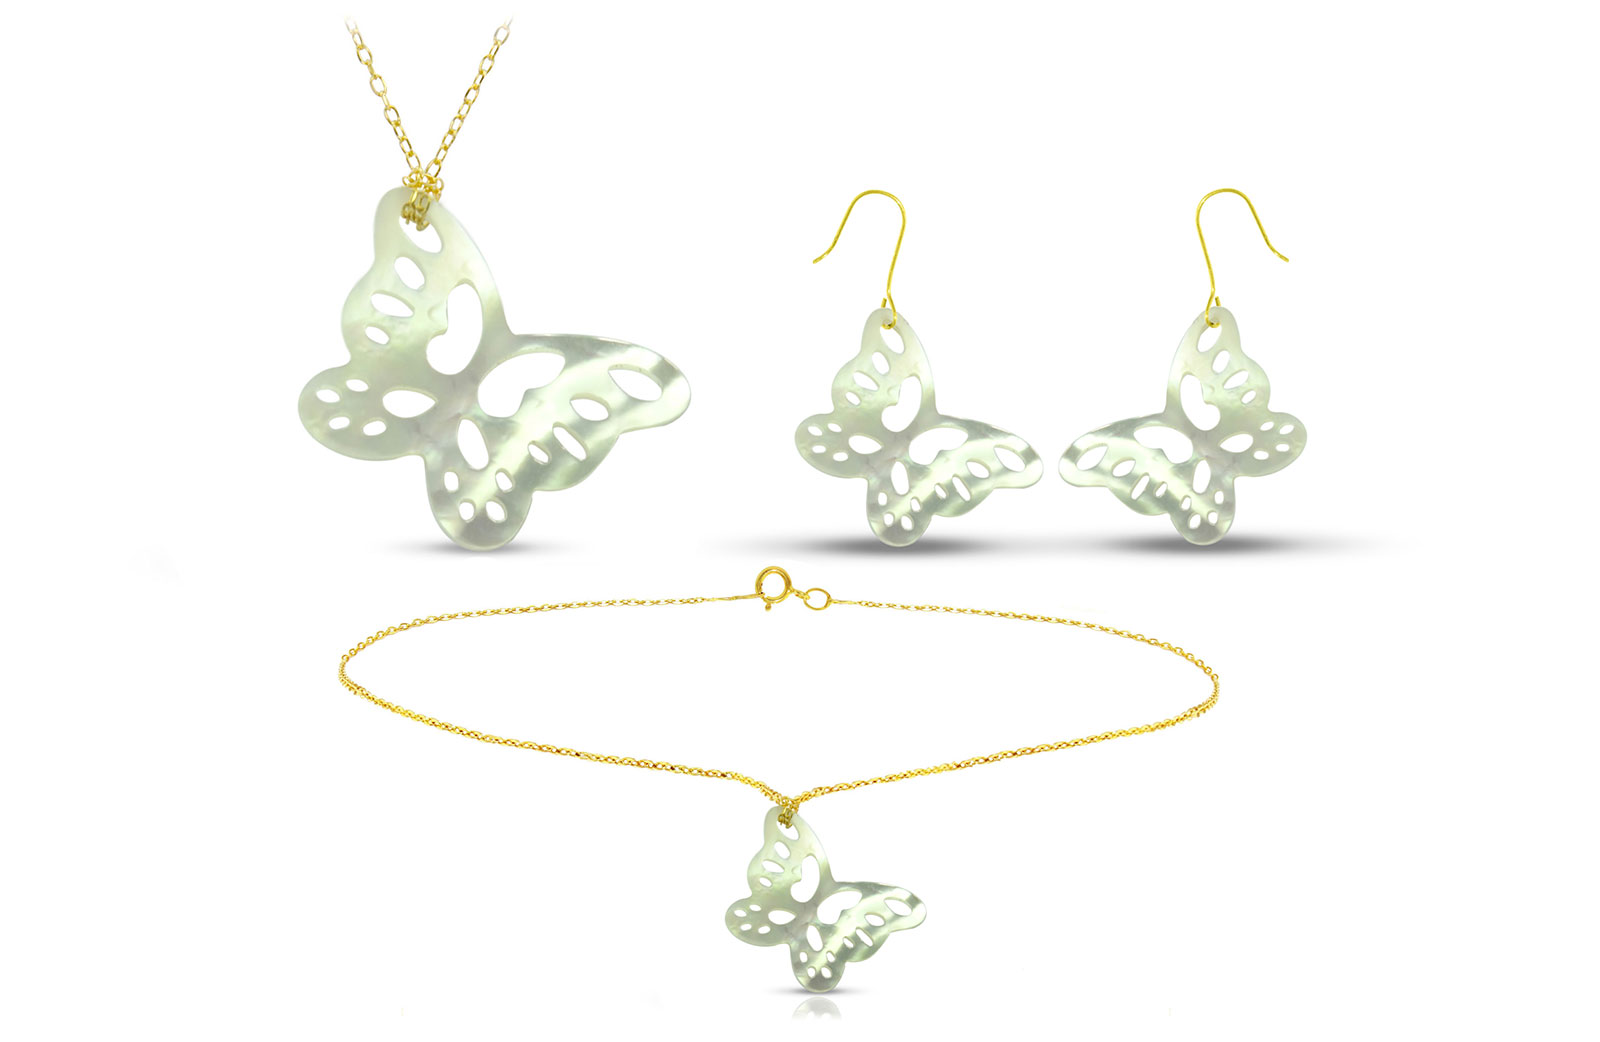 Vera Perla 18K Gold Cute Butterfly Mother of Pearl Jewelry Set, 3 pcs